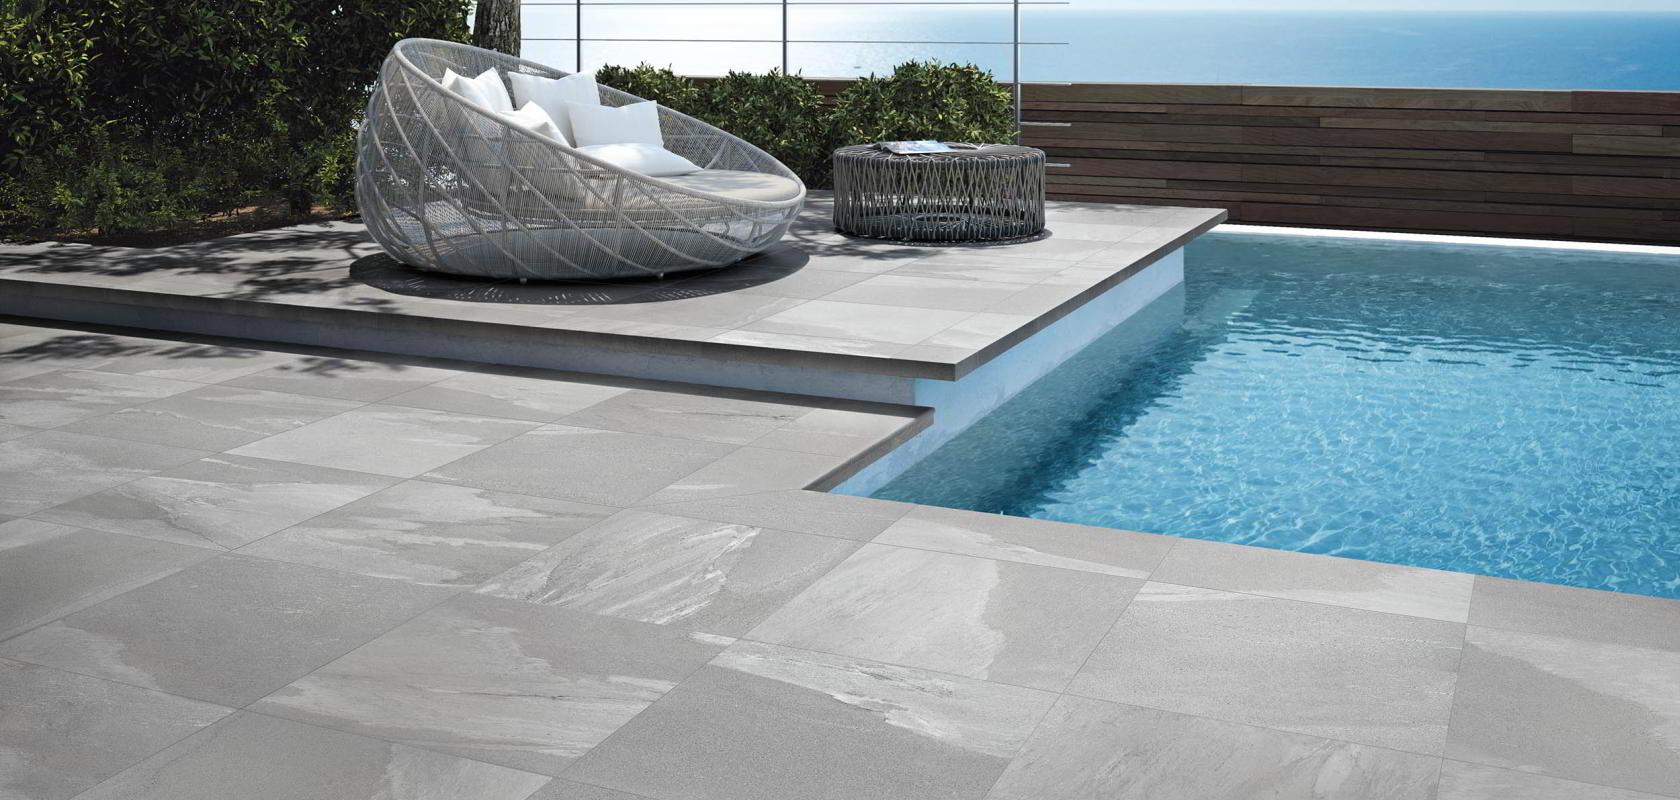 outdoor tiles outdoor ceramic tiles frost-resistant anti-slip porcelain